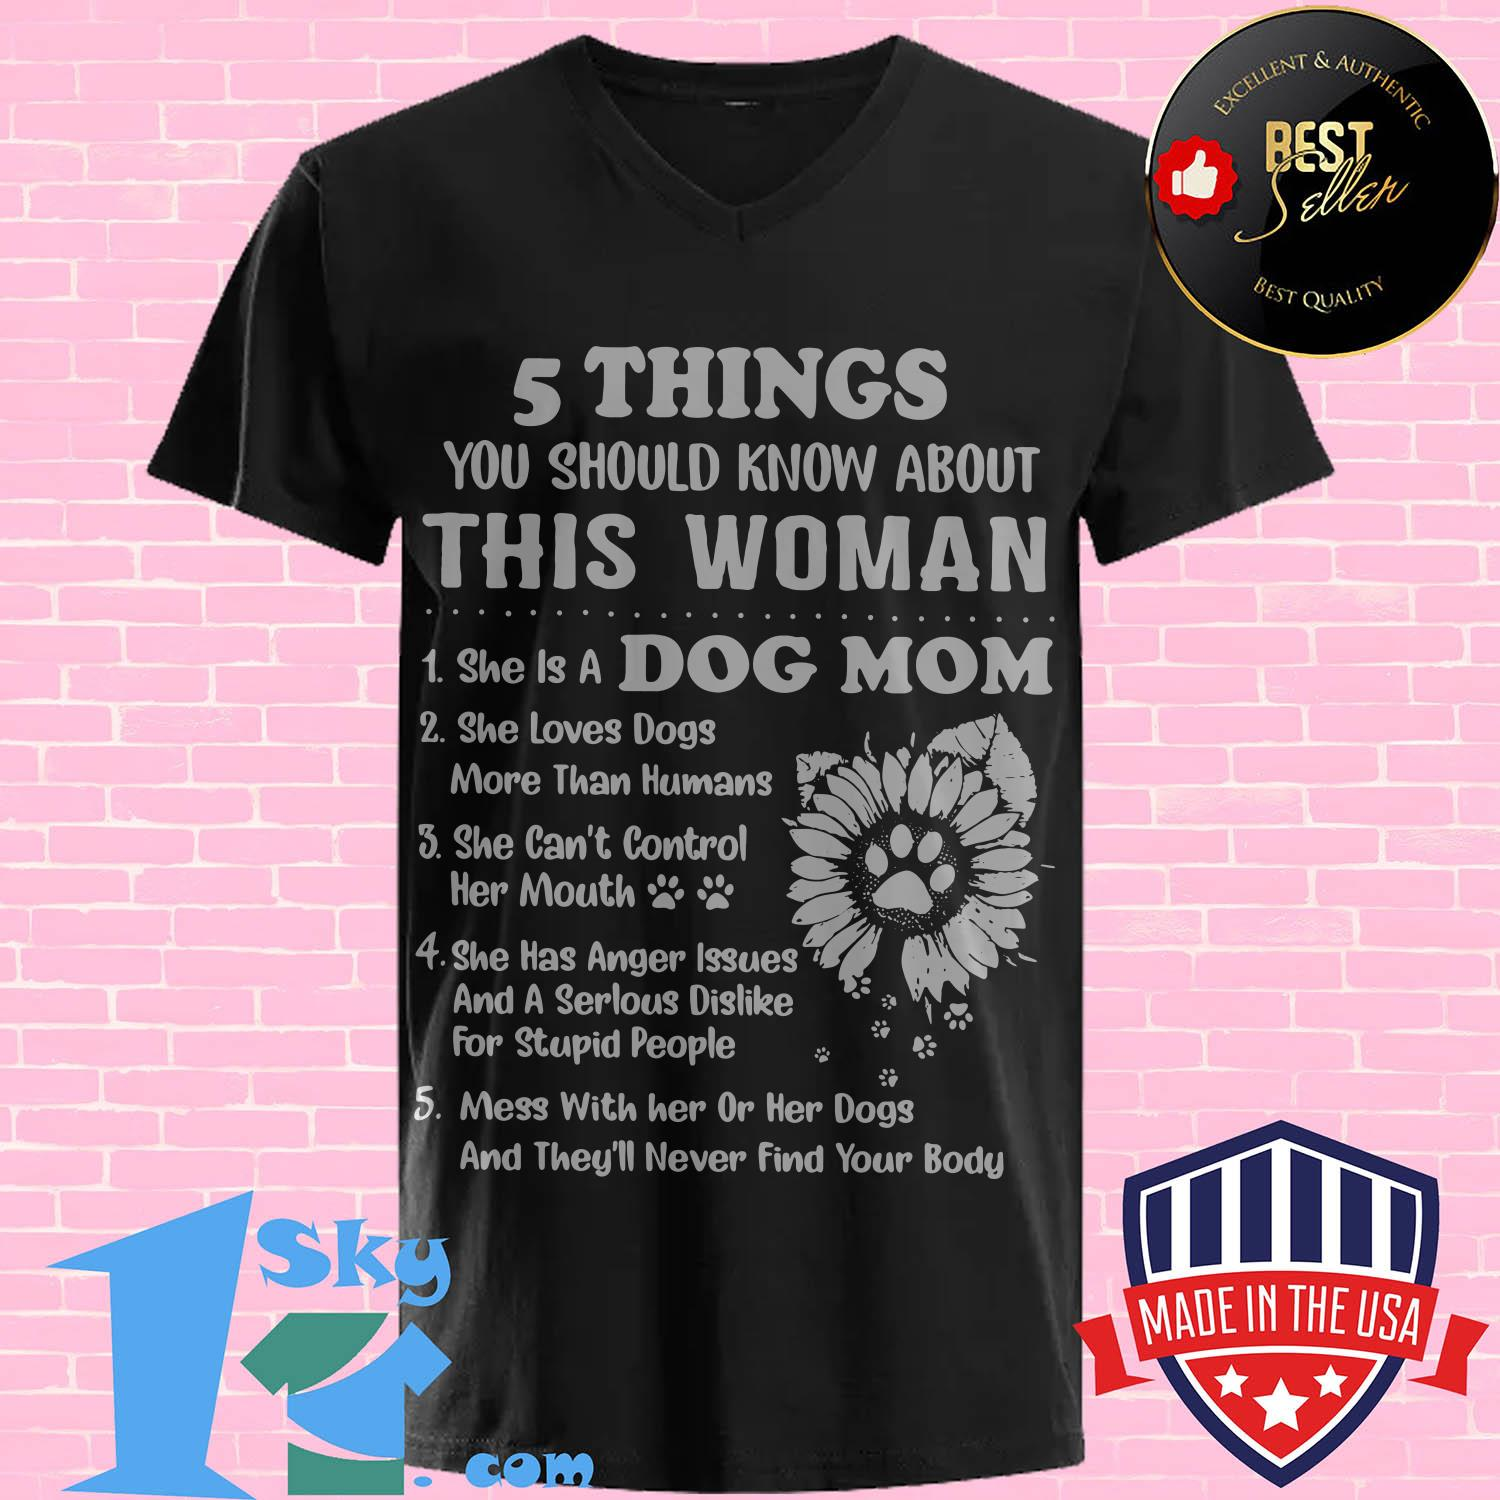 5 things you should know about this woman 1 she is a dog mom v neck - 5 Things You Should Know About This Woman 1 She Is A Dog Mom Sunflower shirt